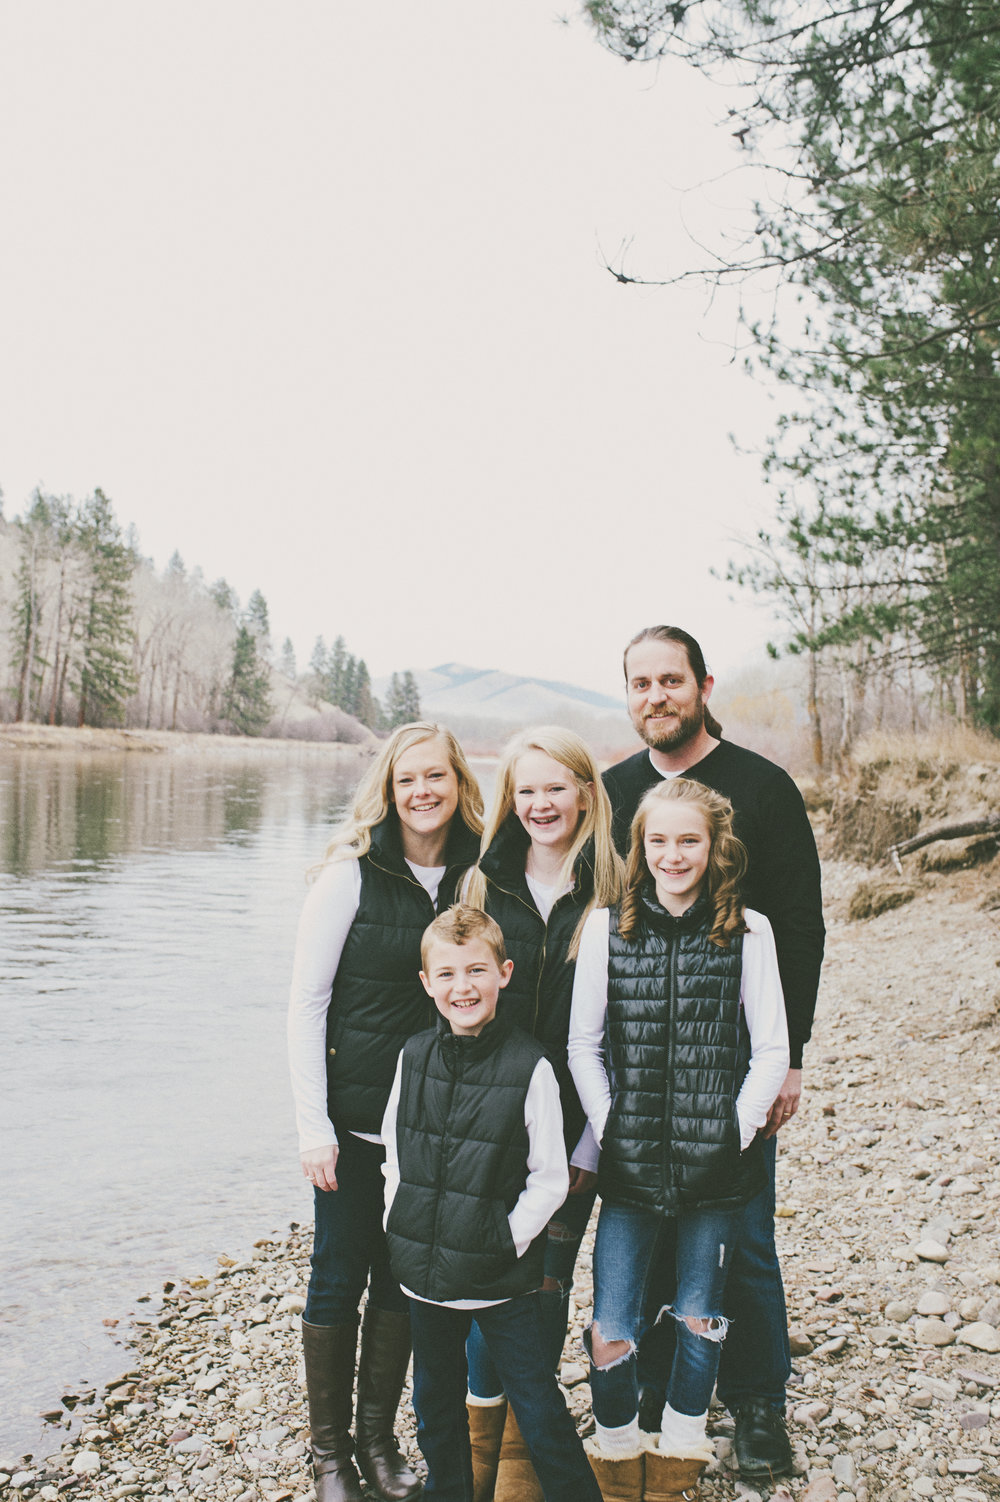 Missoula Family Photography_Family Session at Maclay Flats_Honzel Family_Kelsey Lane Photography-9121 copy.jpg